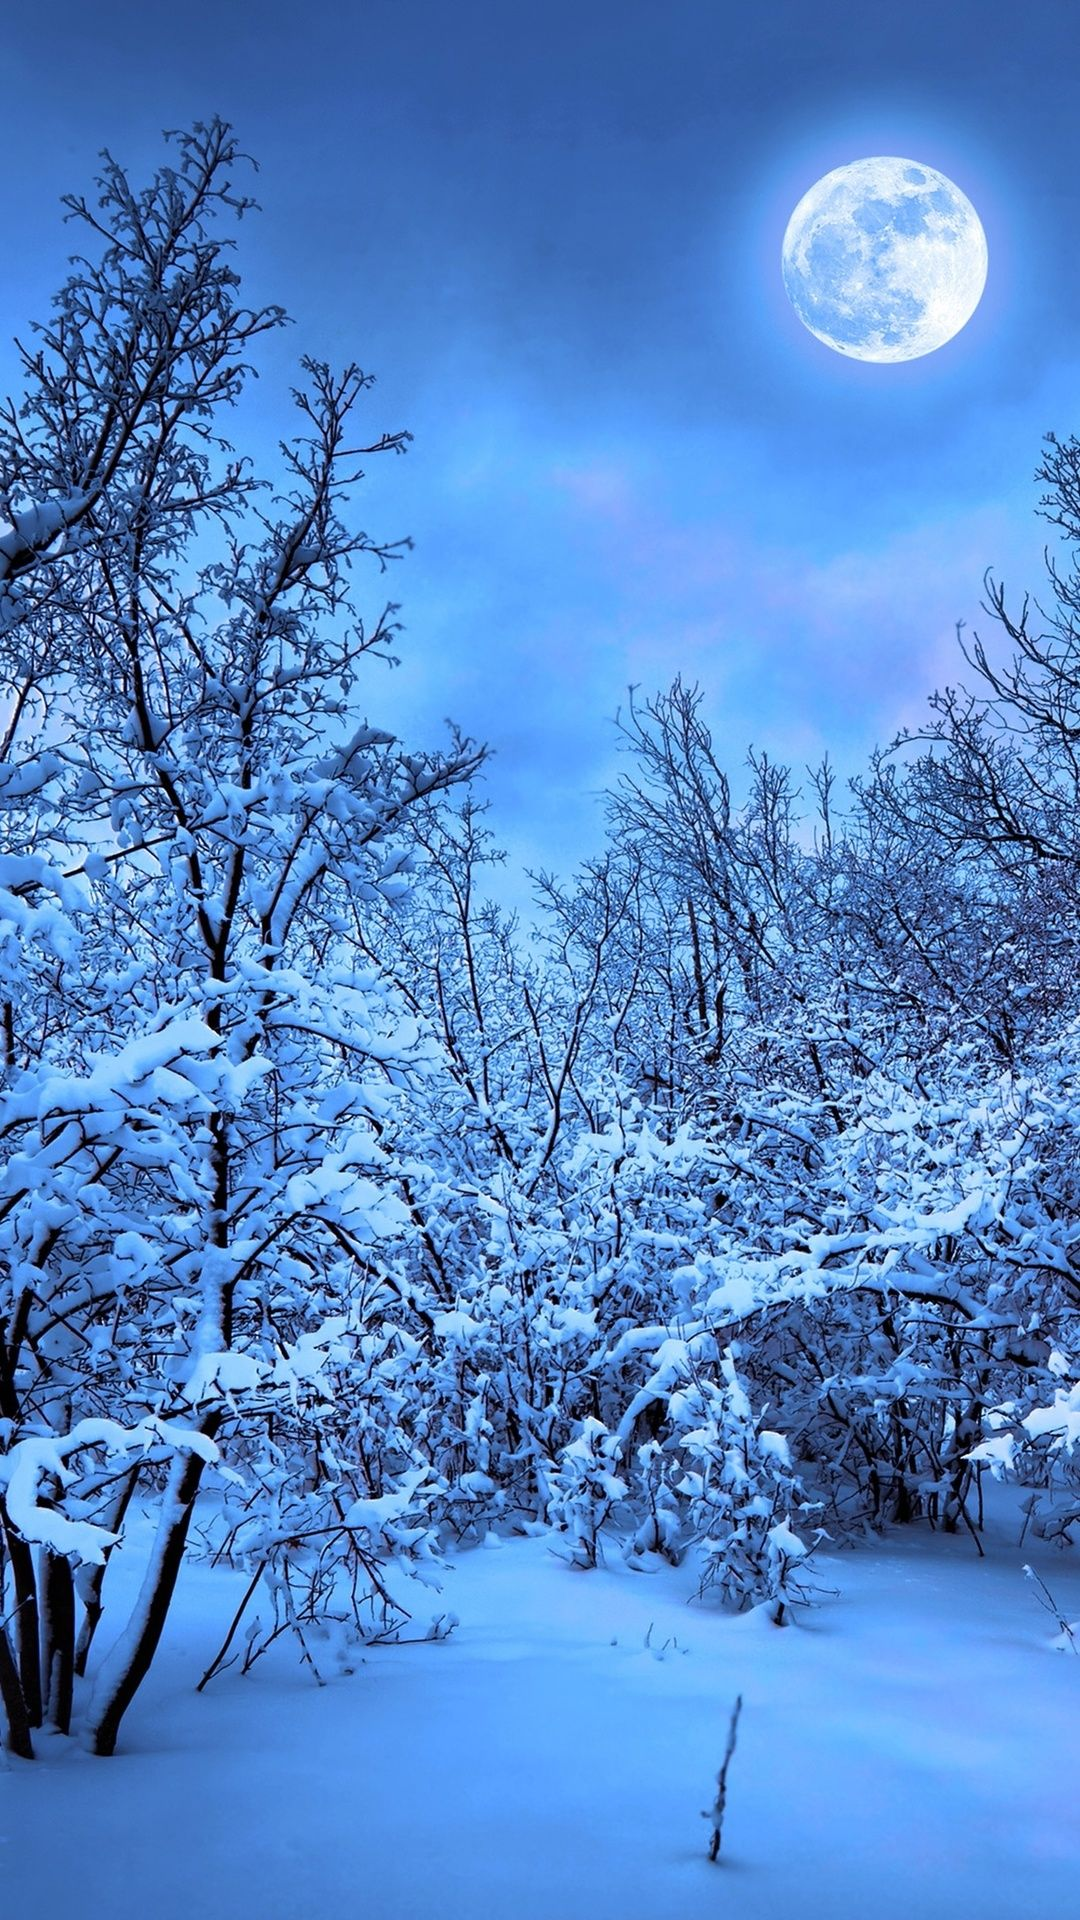 Winter Snow Nature 4k In 1080x1920 Resolution Iphone Wallpaper Winter Snow Wallpaper Iphone Iphone 5s Wallpaper